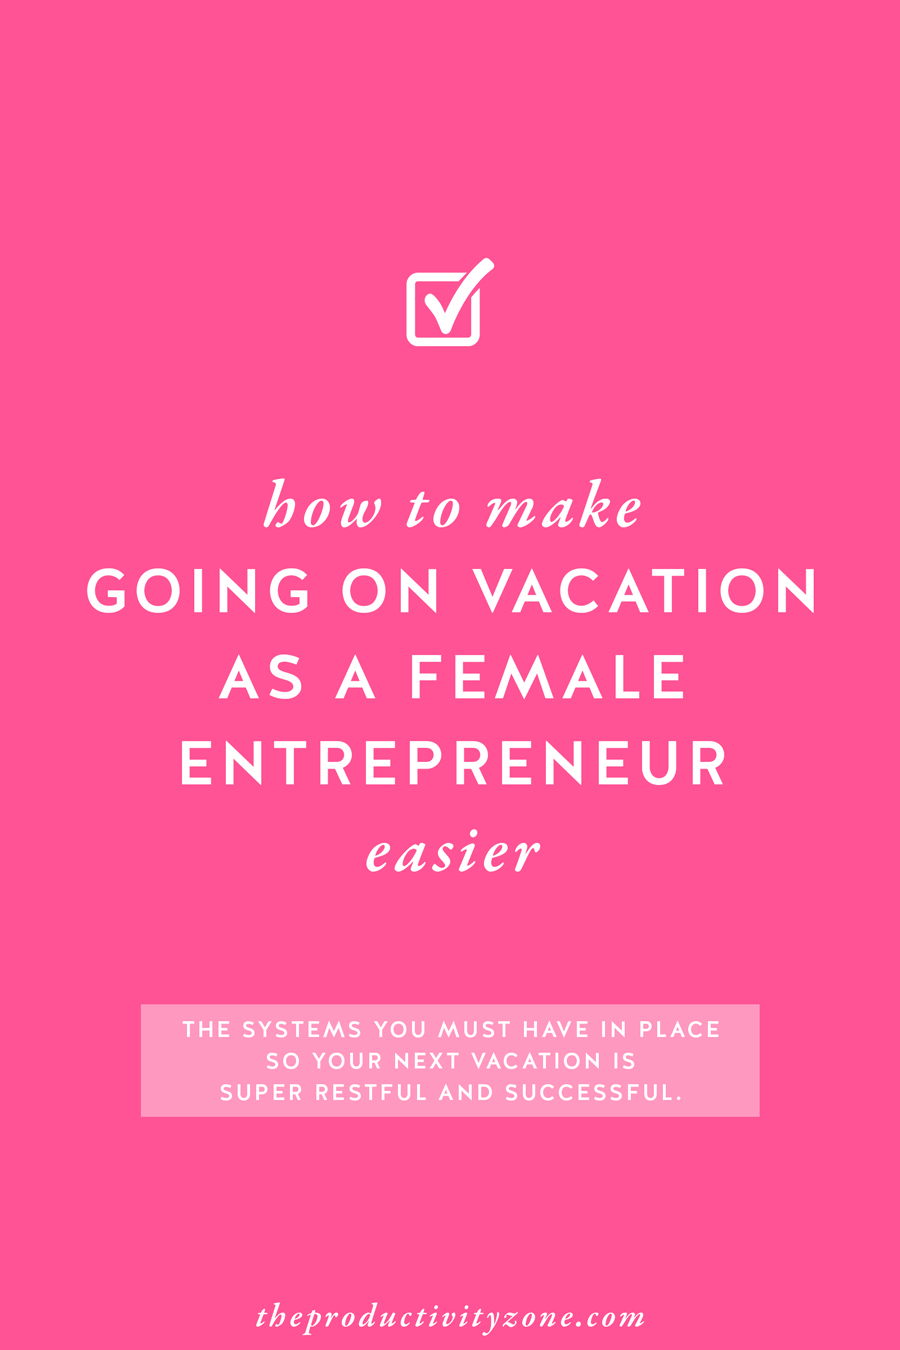 Going on vacation as a female entrepreneur can be tricky and a lot of hard work, especially if you're also a solopreneur, but SYSTEMS make things (dare I say it) pretty darn easy. Find out which 4 systems you MUST HAVE in place on The Productivity Zone!!